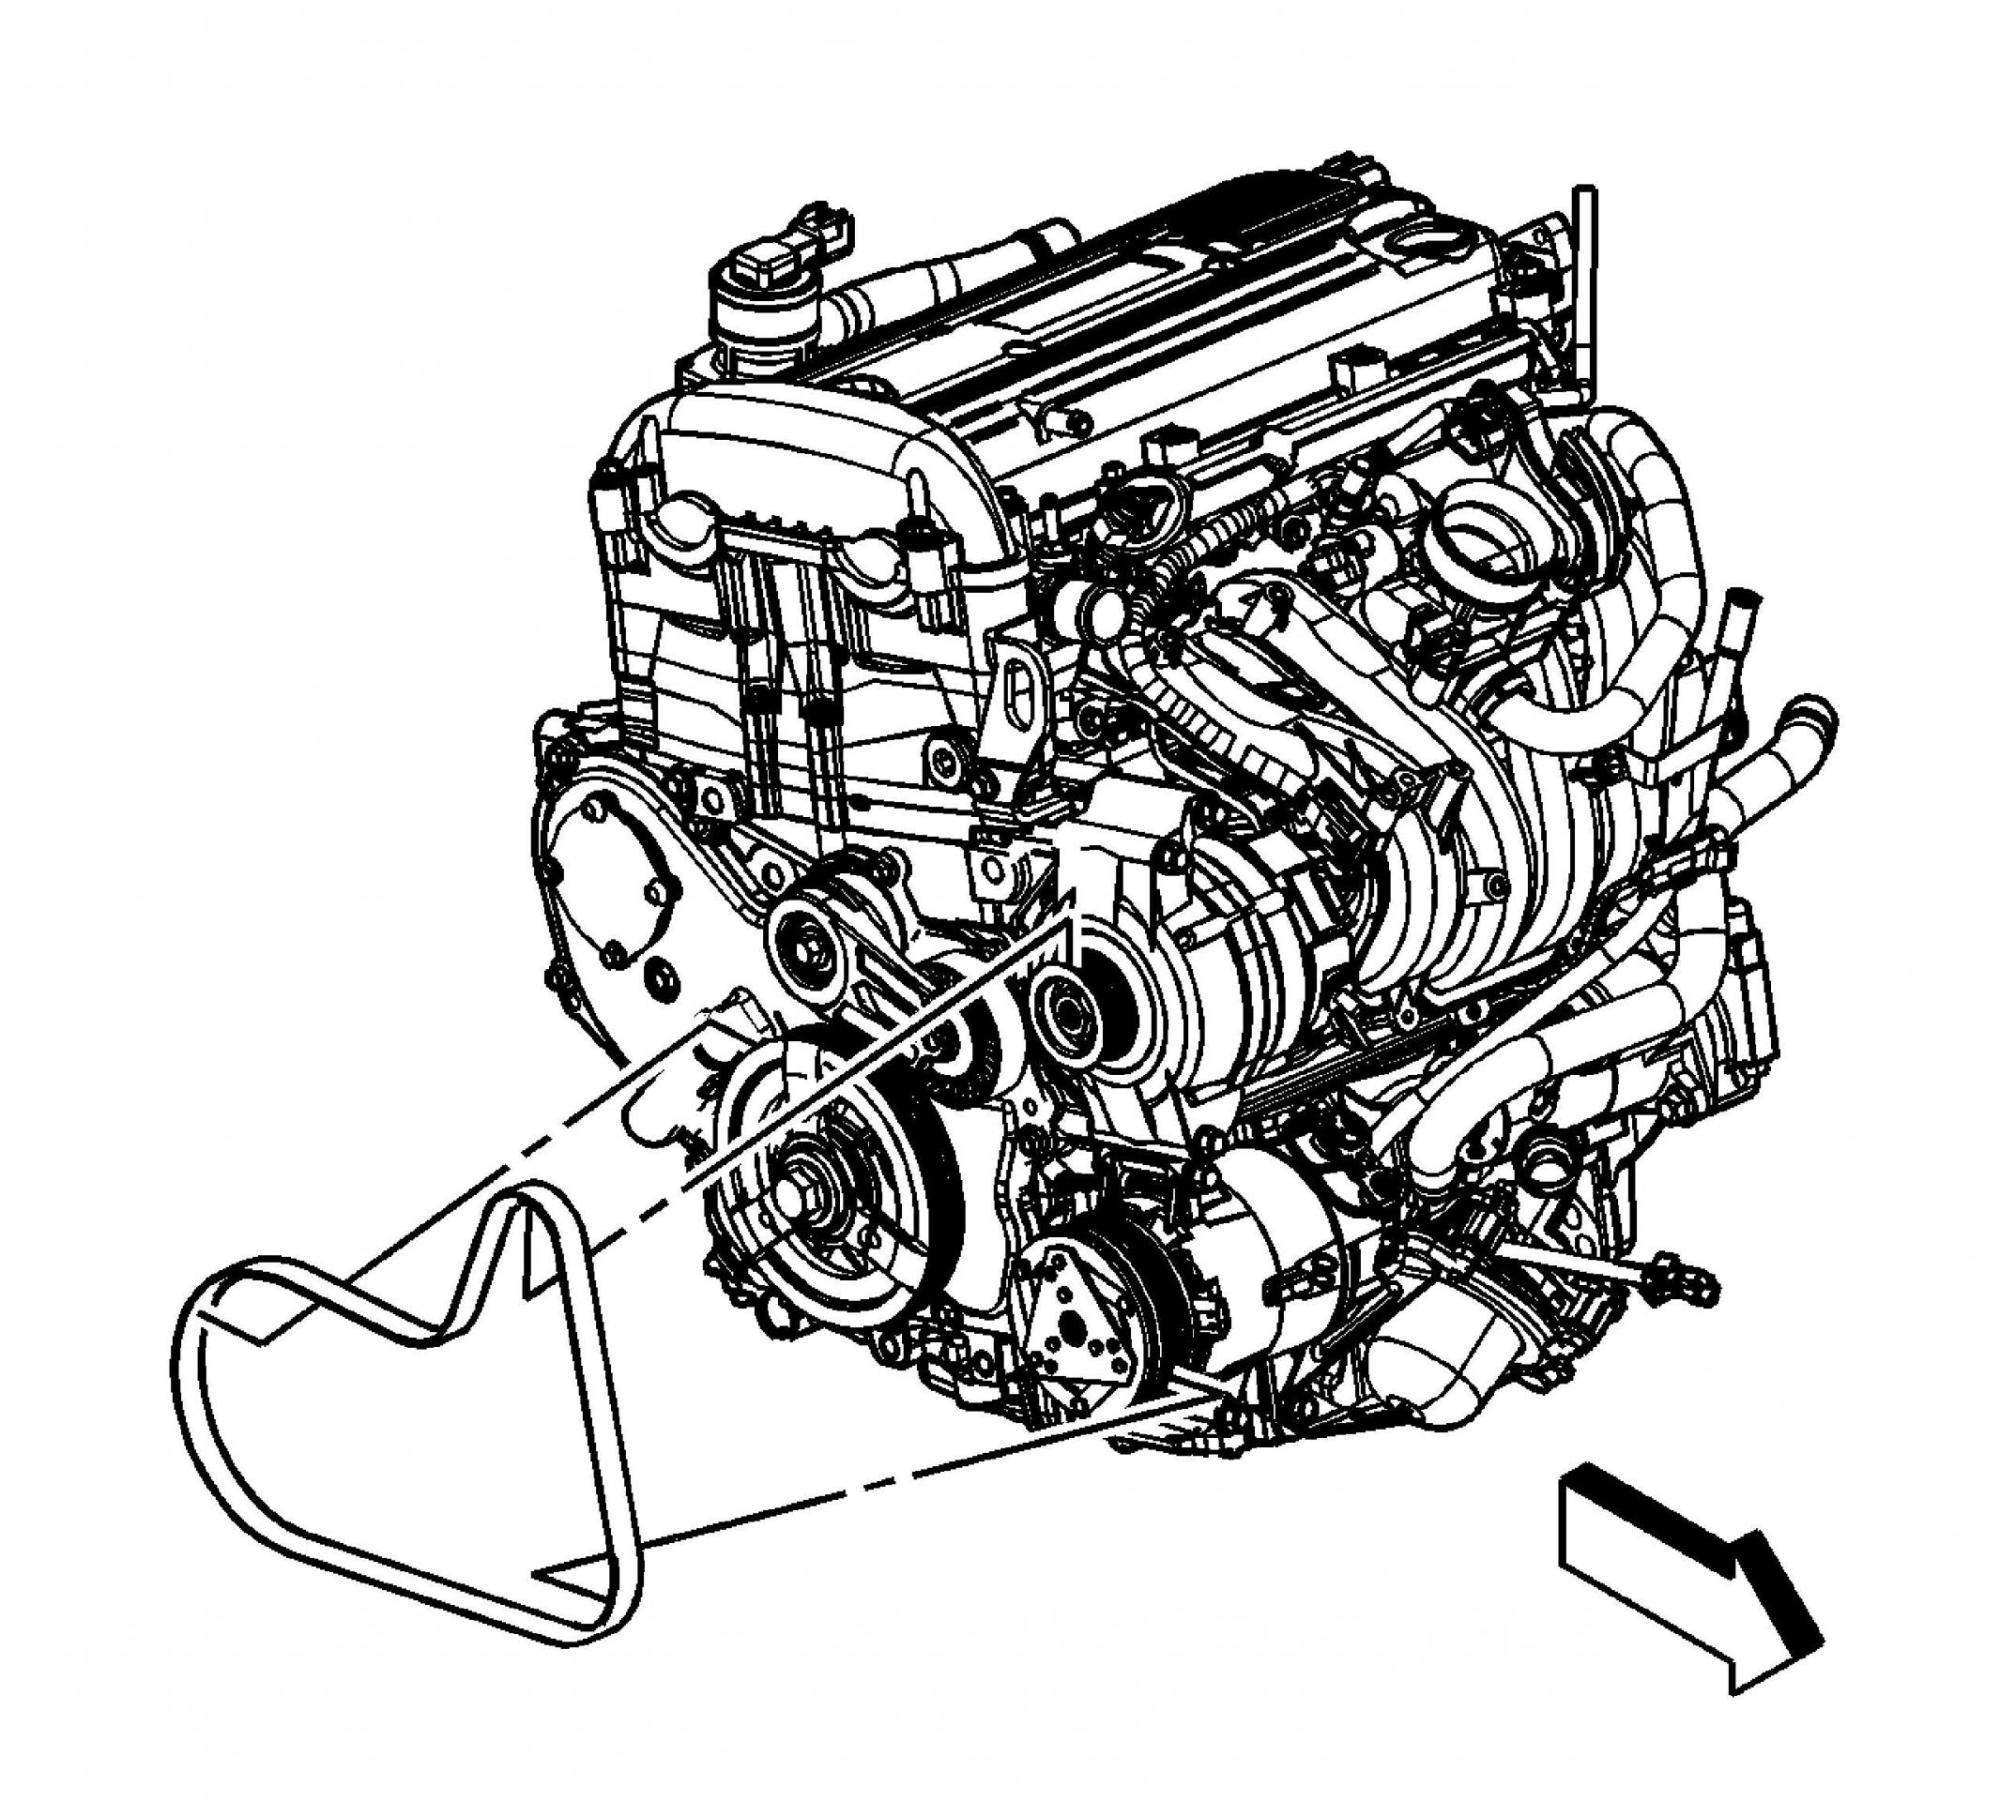 hight resolution of 2008 chevrolet aveo owner s manual pdf